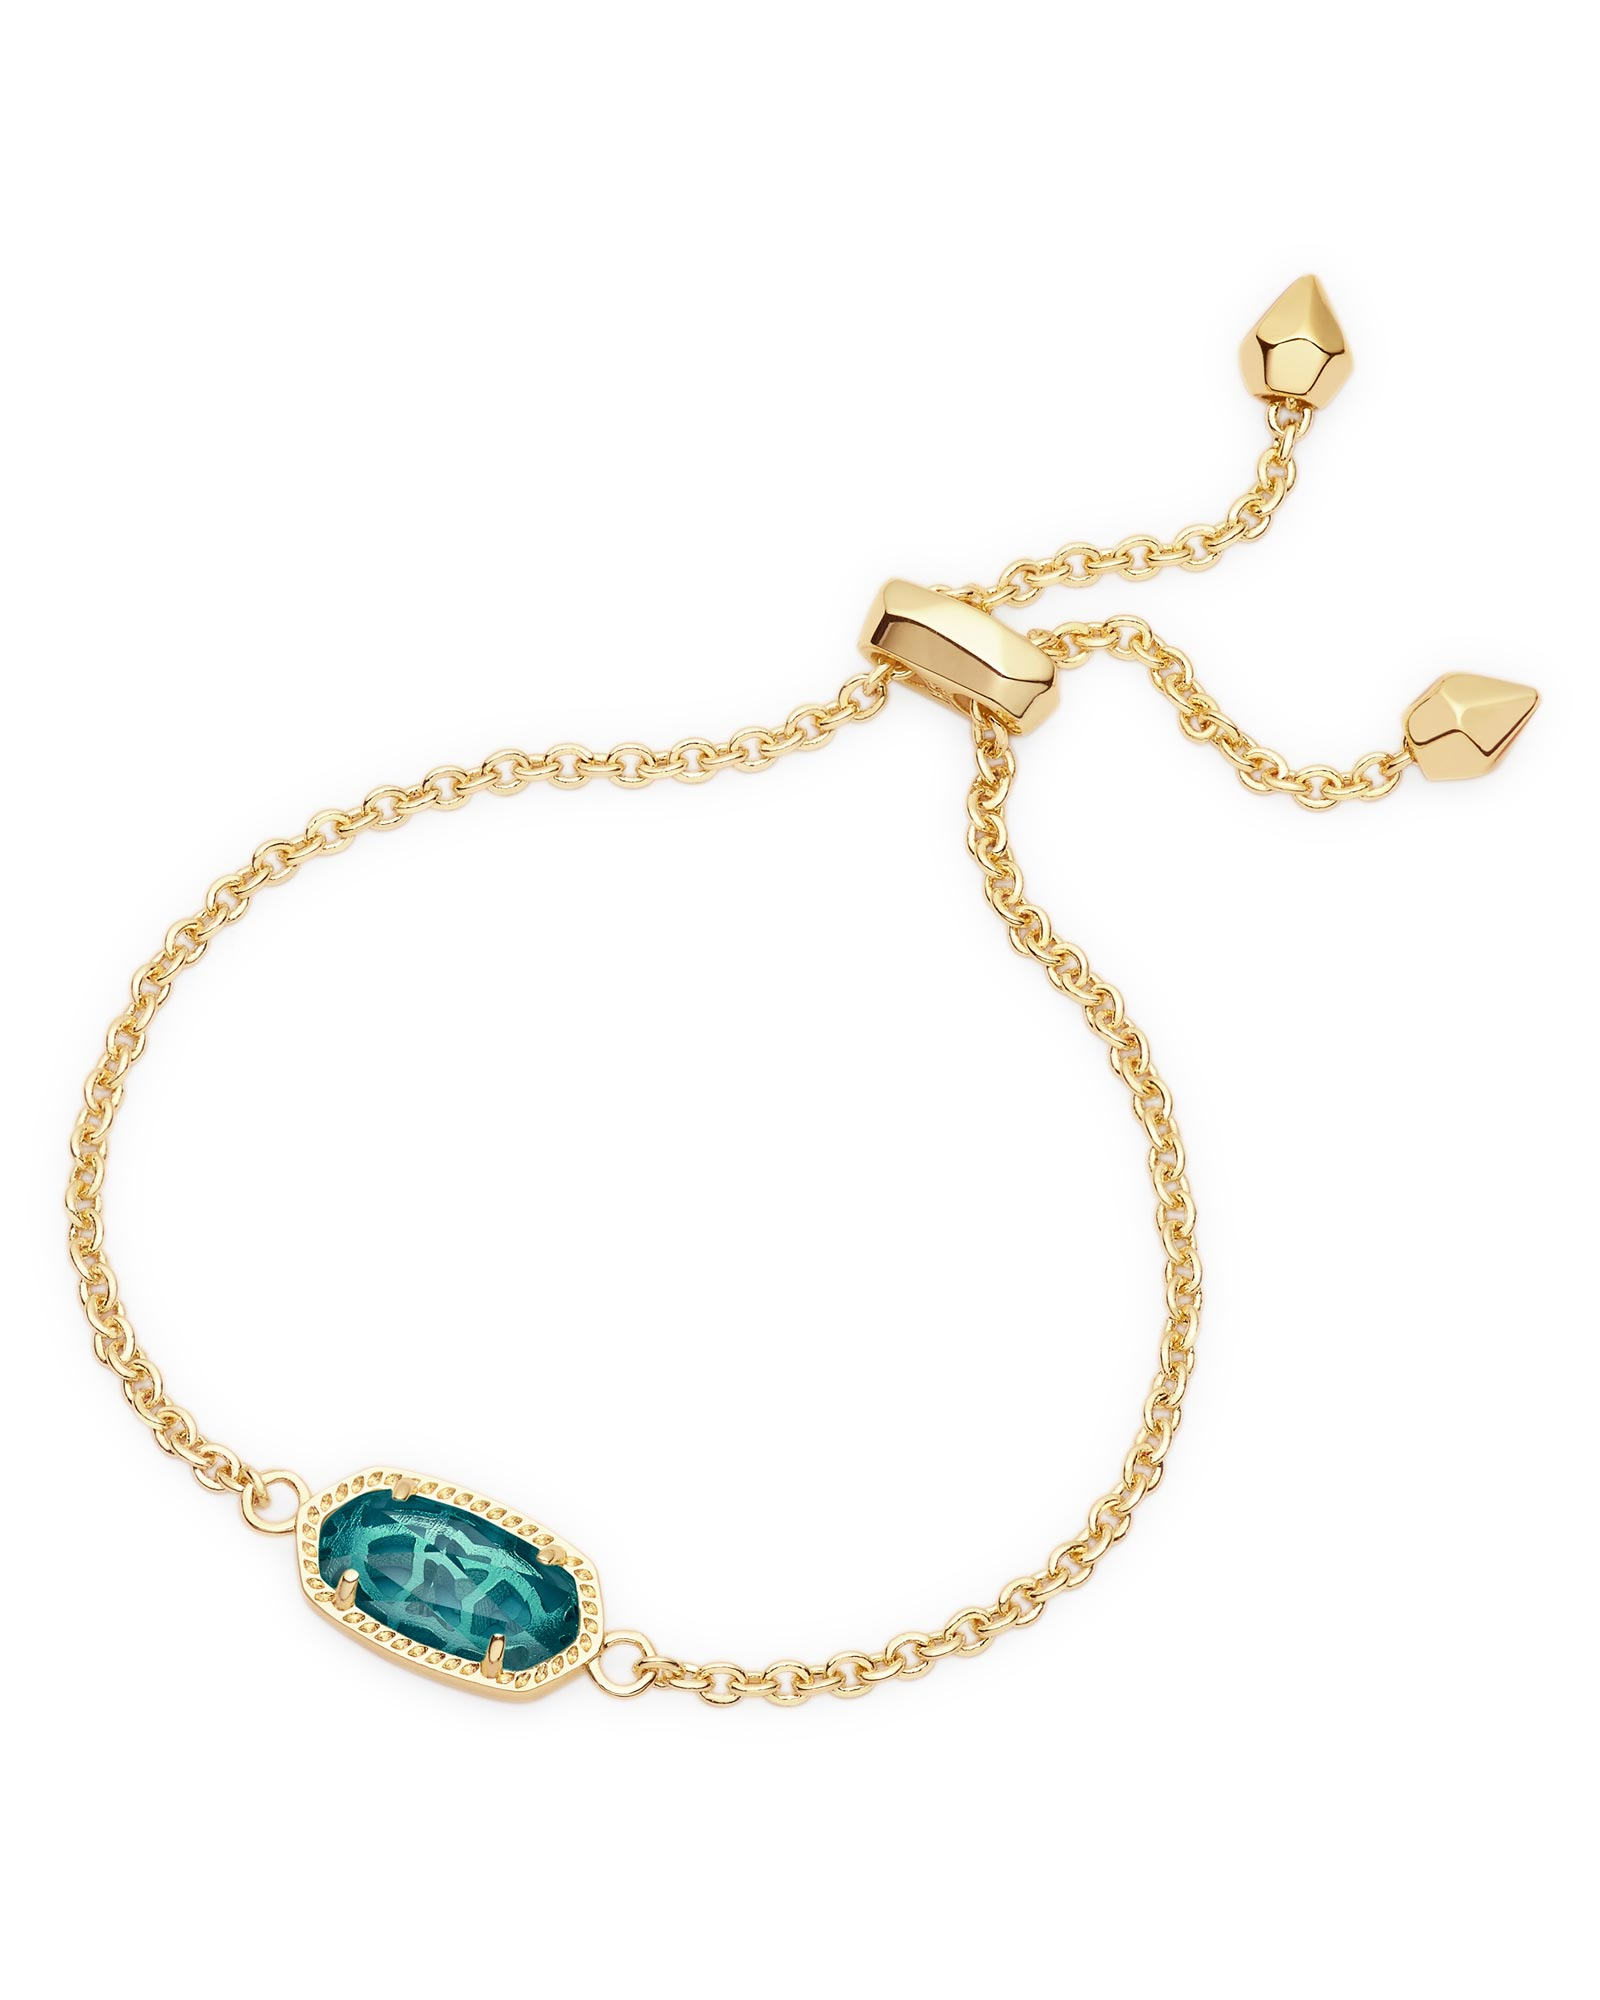 Elaina Adjustable Chain Bracelet in London Blue